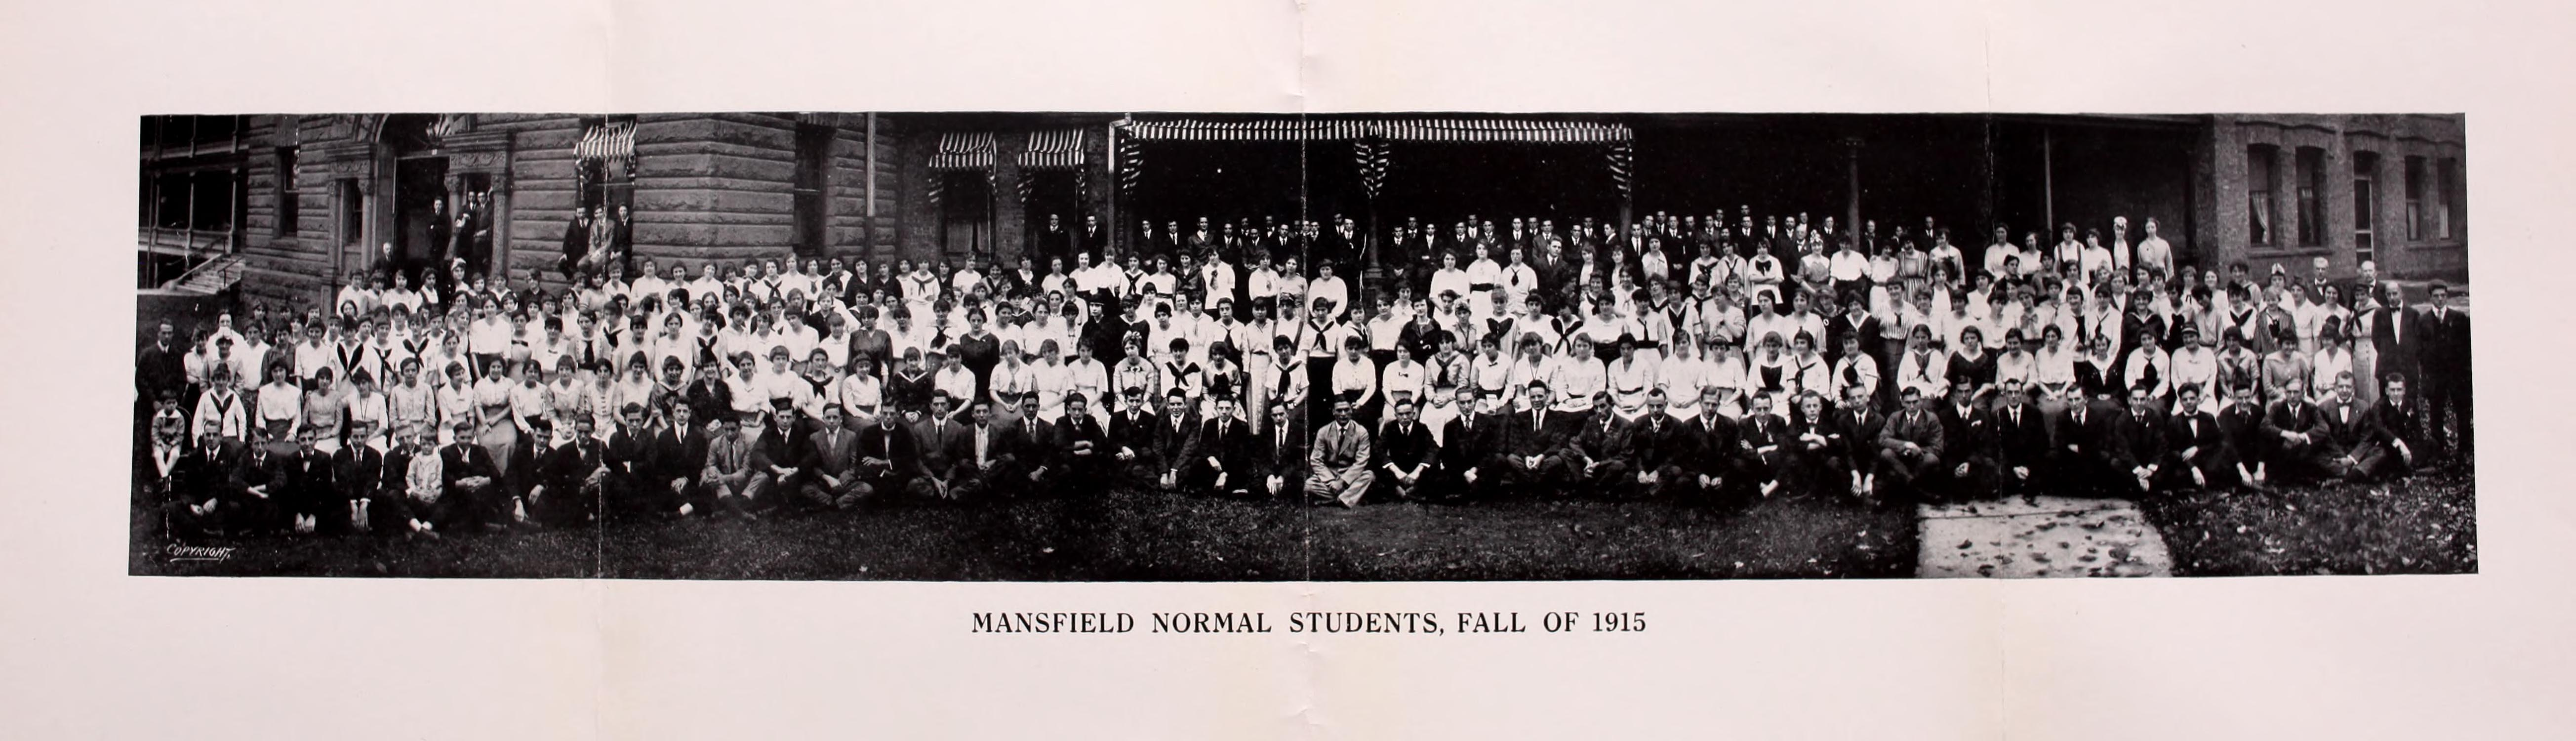 Mansfield Normal Students Fall 1915